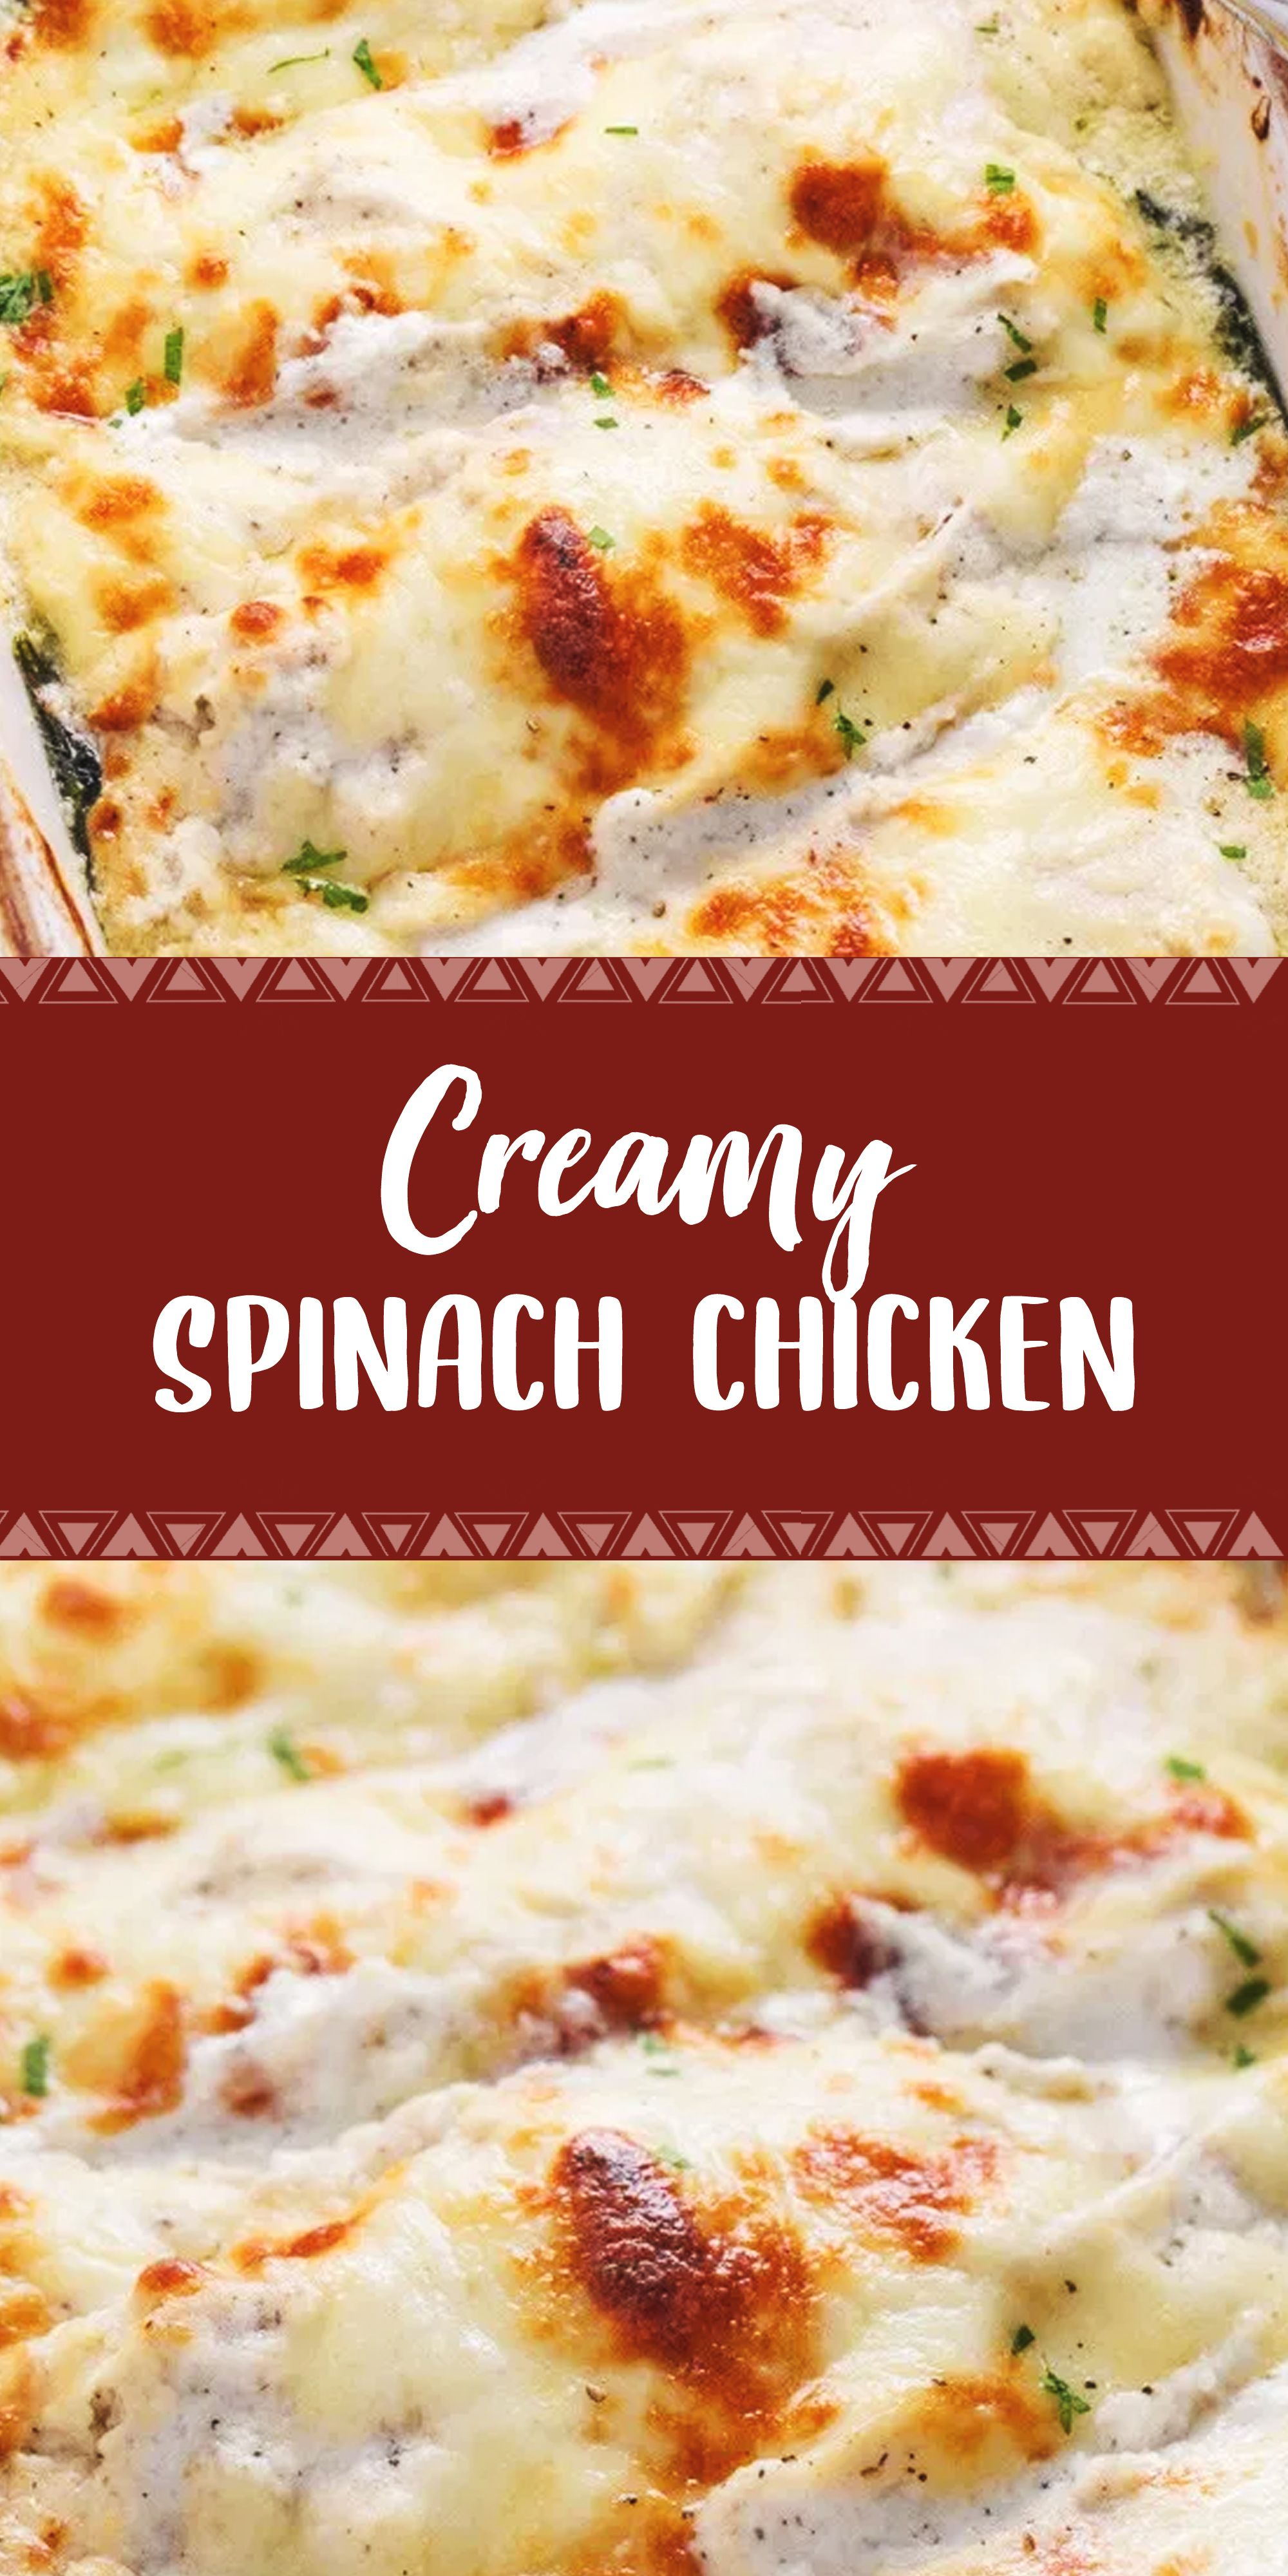 Creamy Spinach Chicken In 2020 Creamy Spinach Chicken Healthy Food Recipes Clean Eating Chicken Crockpot Recipes